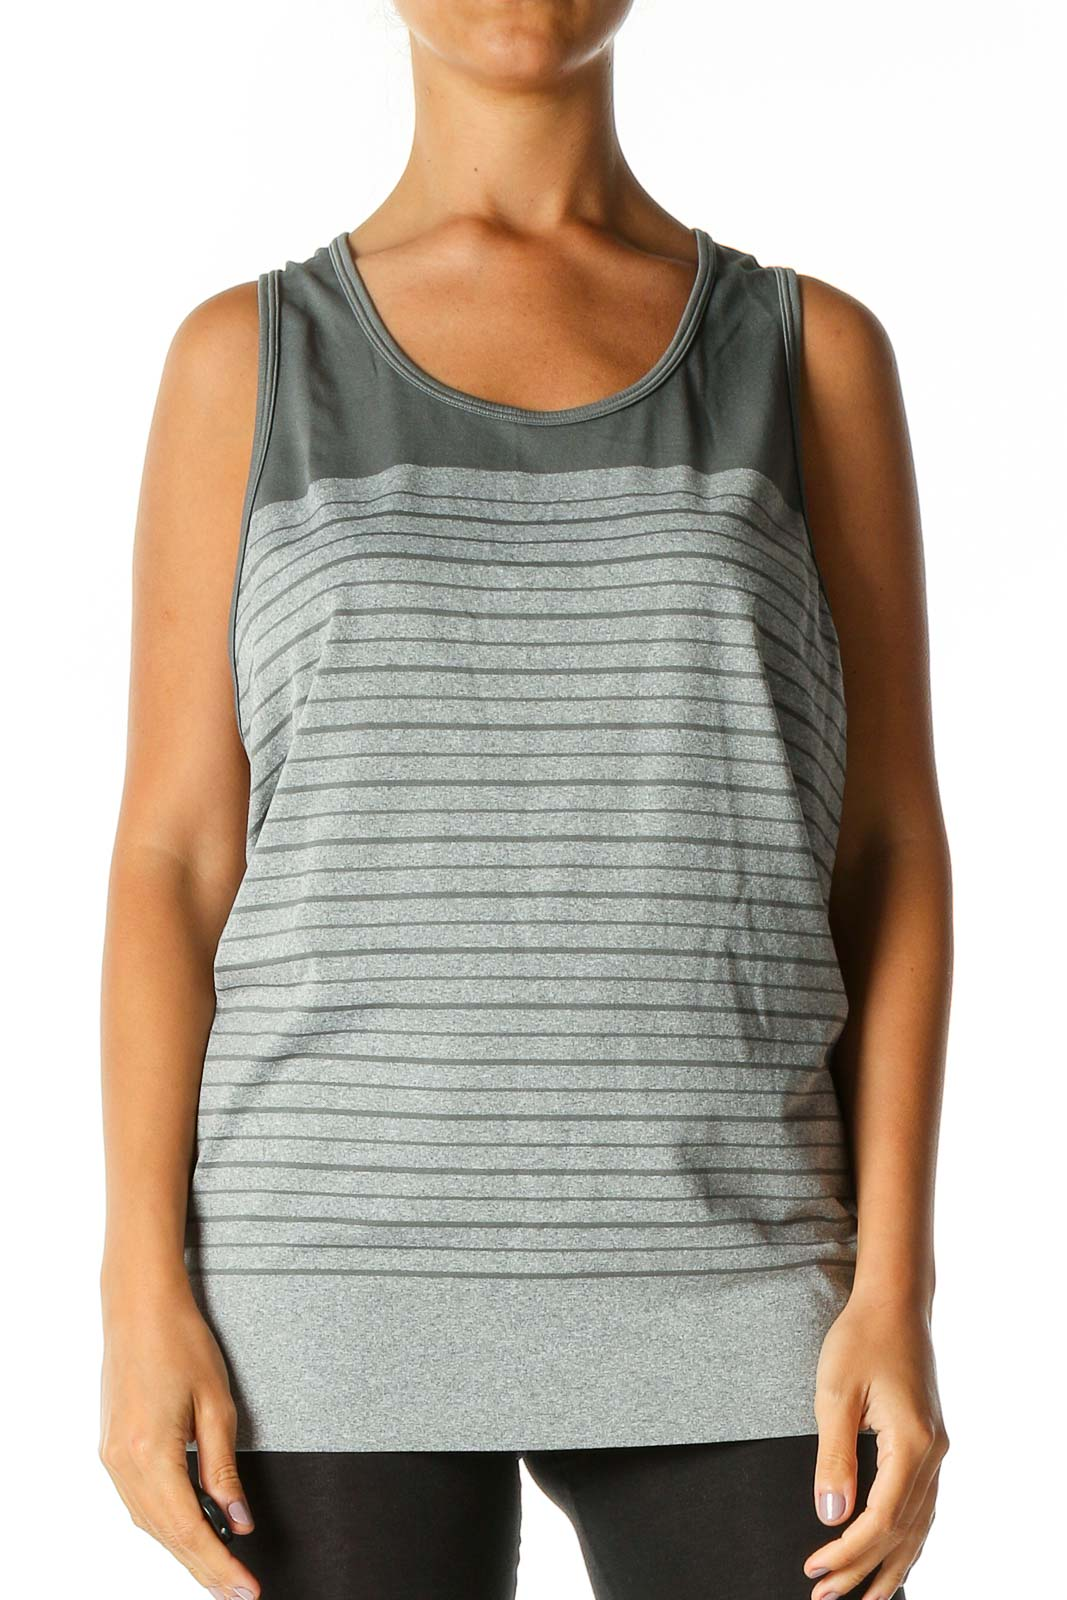 Gray Striped Activewear Tank Top Front